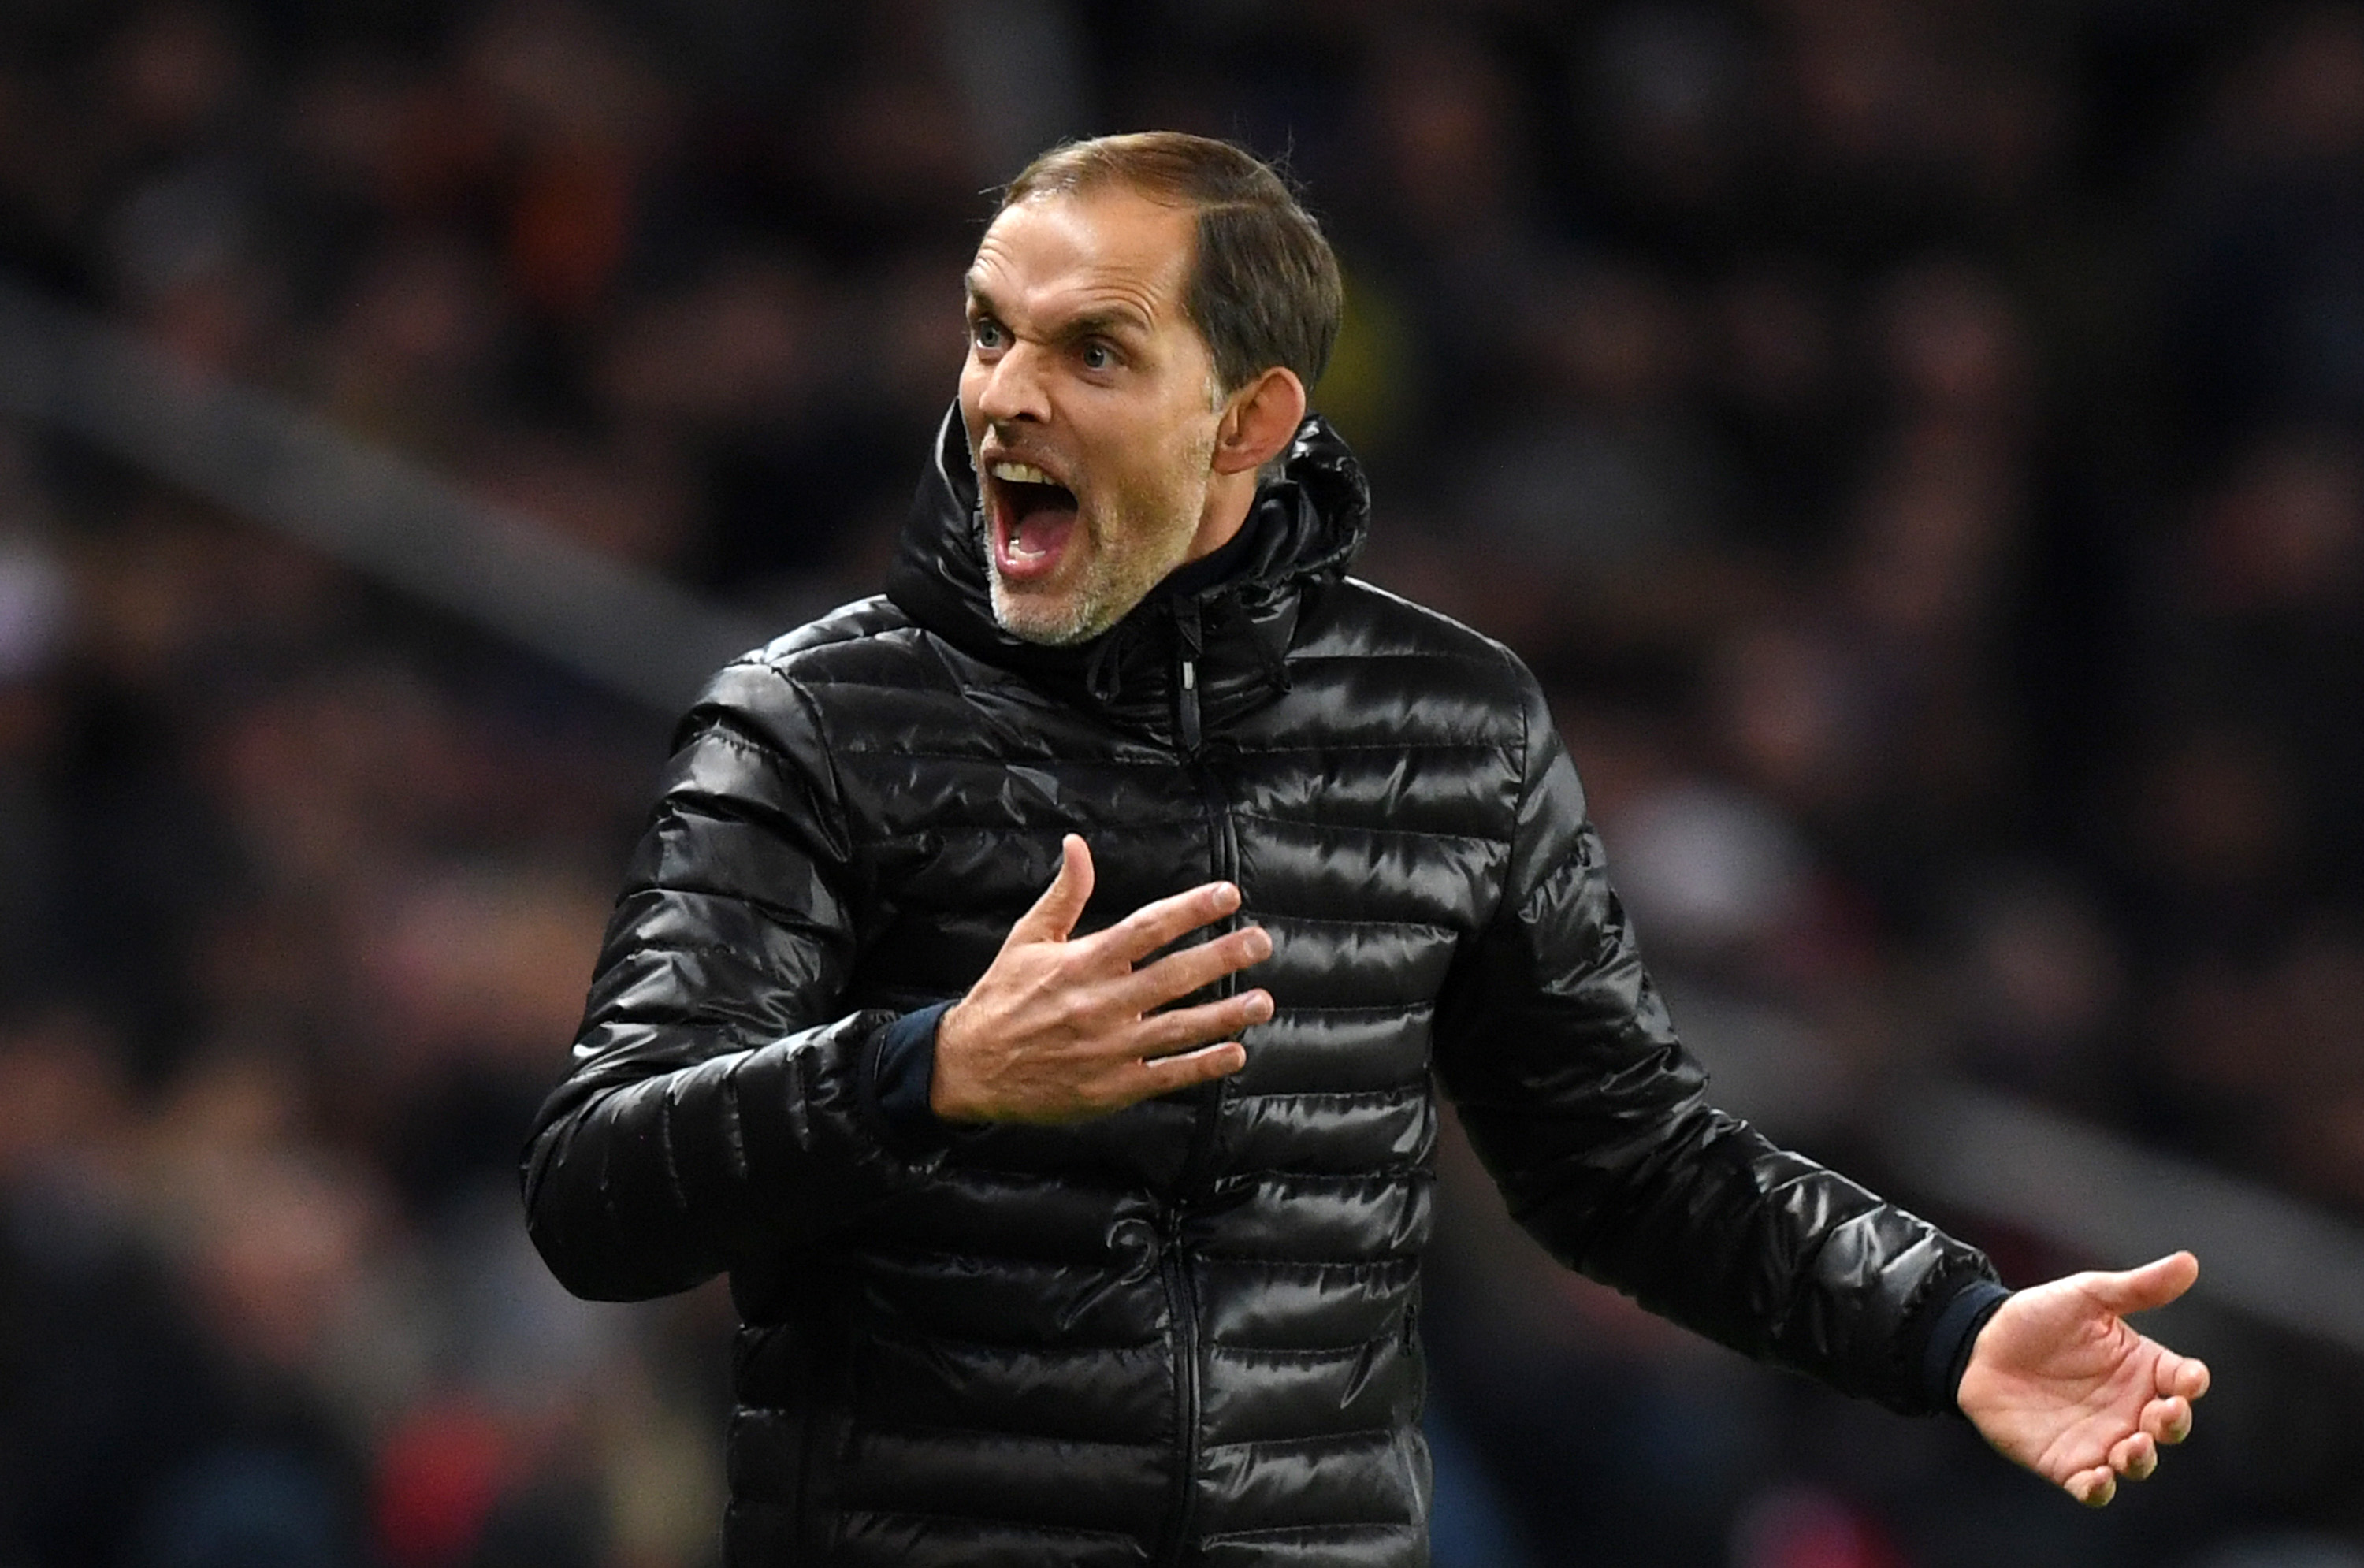 Tuchel could bring in a new defender at Chelsea next summer (Photo by Shaun Botterill/Getty Images)